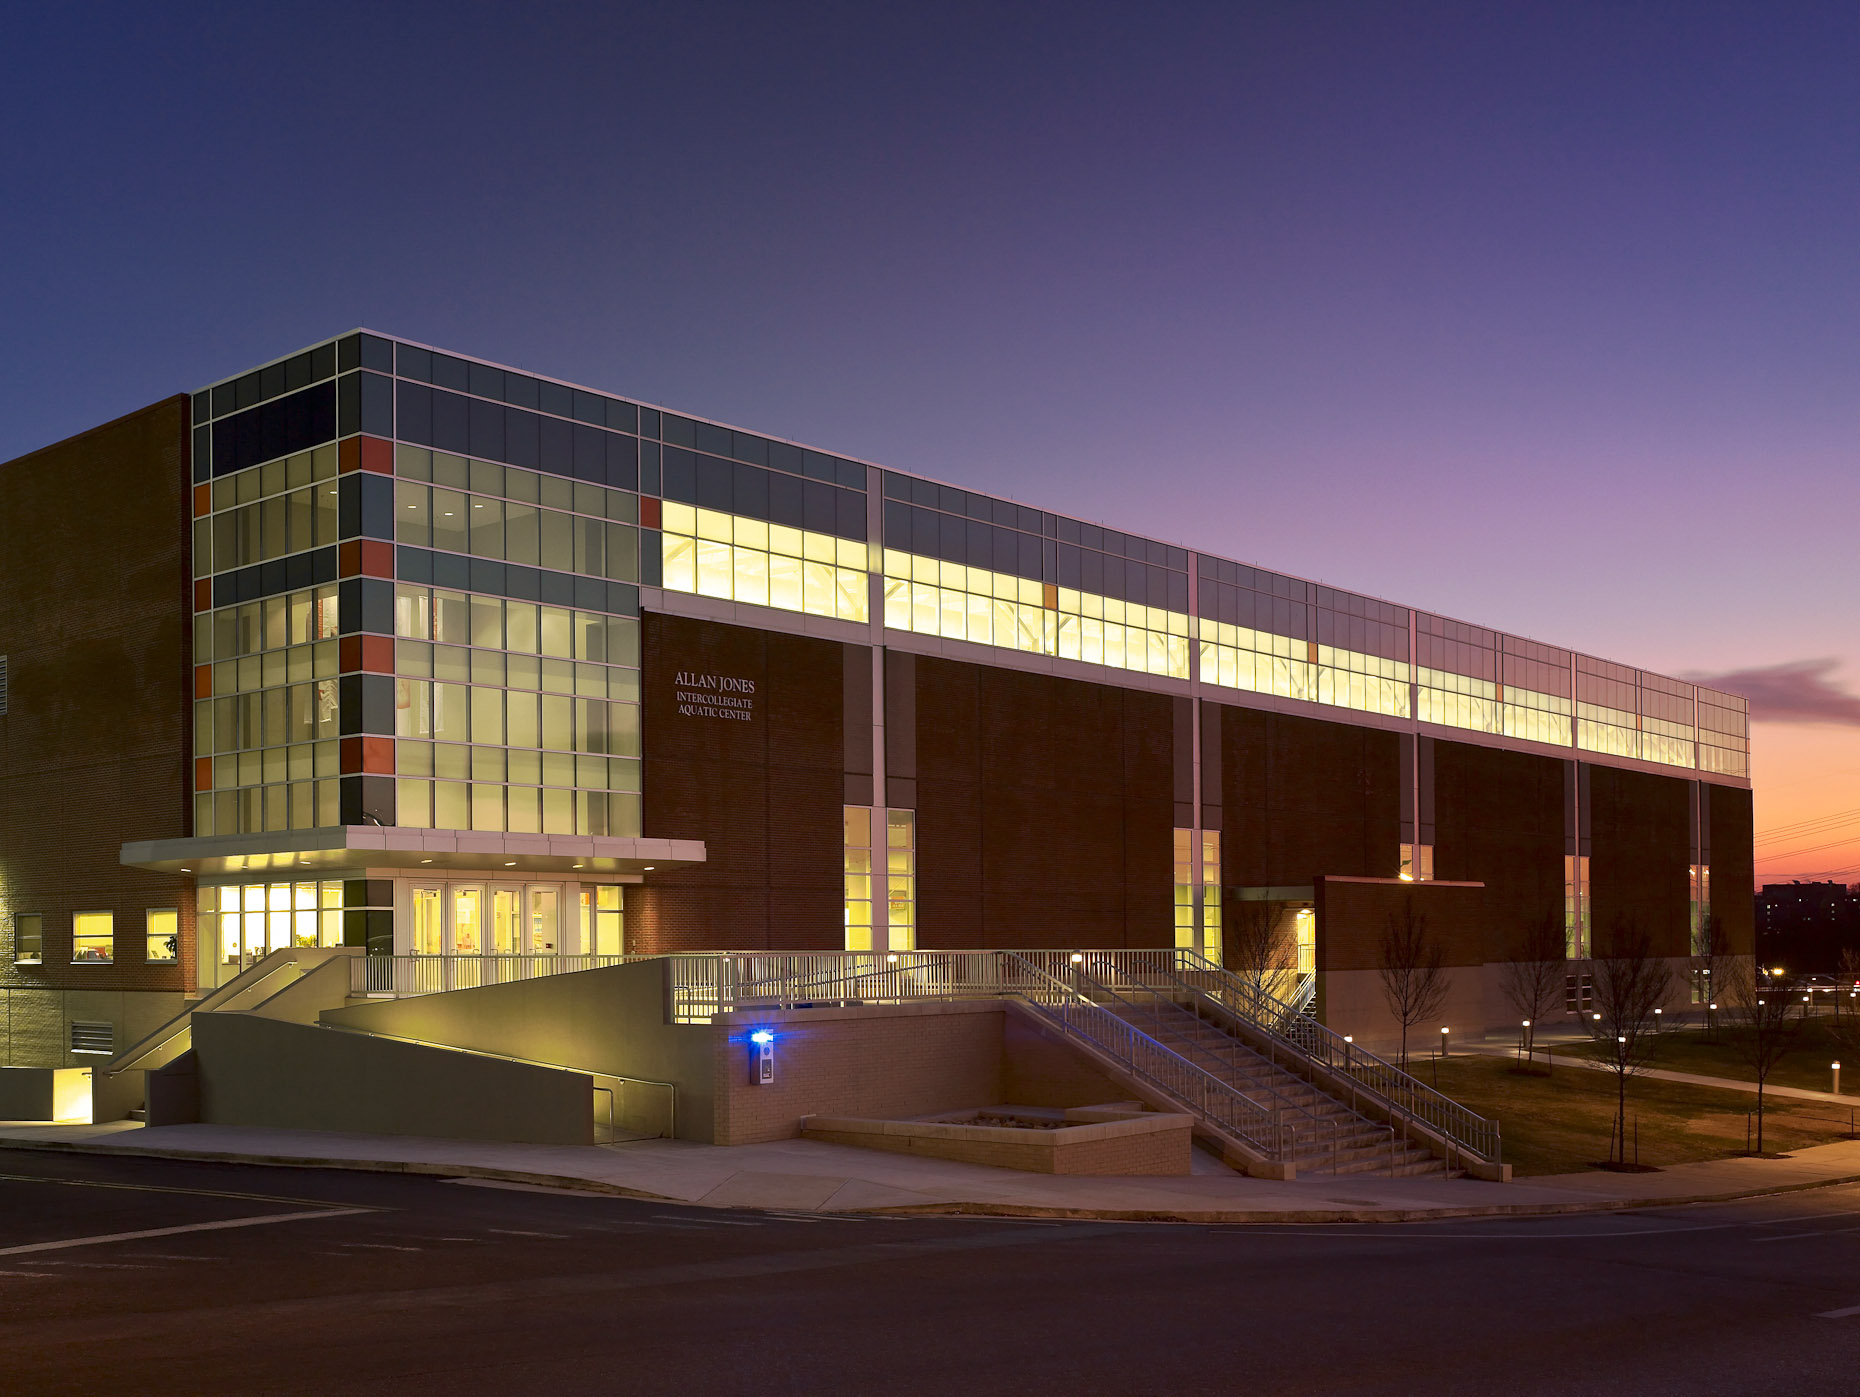 Allan Jones Intercollegiate Aquatics Center at the University of Tennessee | HNTB